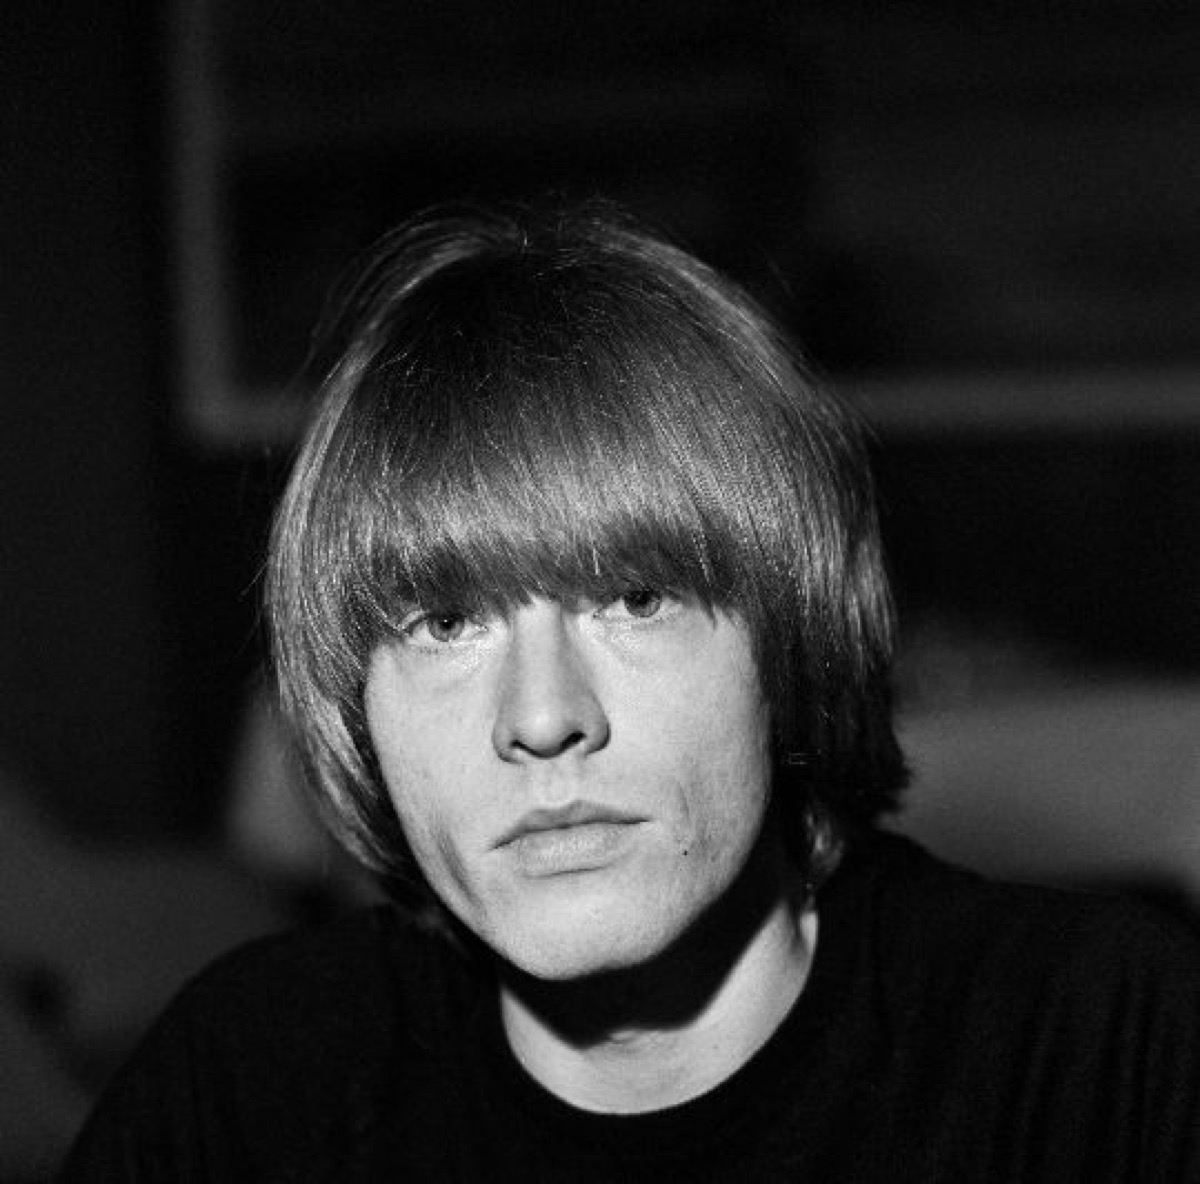 Photograph of Brian Jones of The Rolling Stones during the band's visit to Finland.